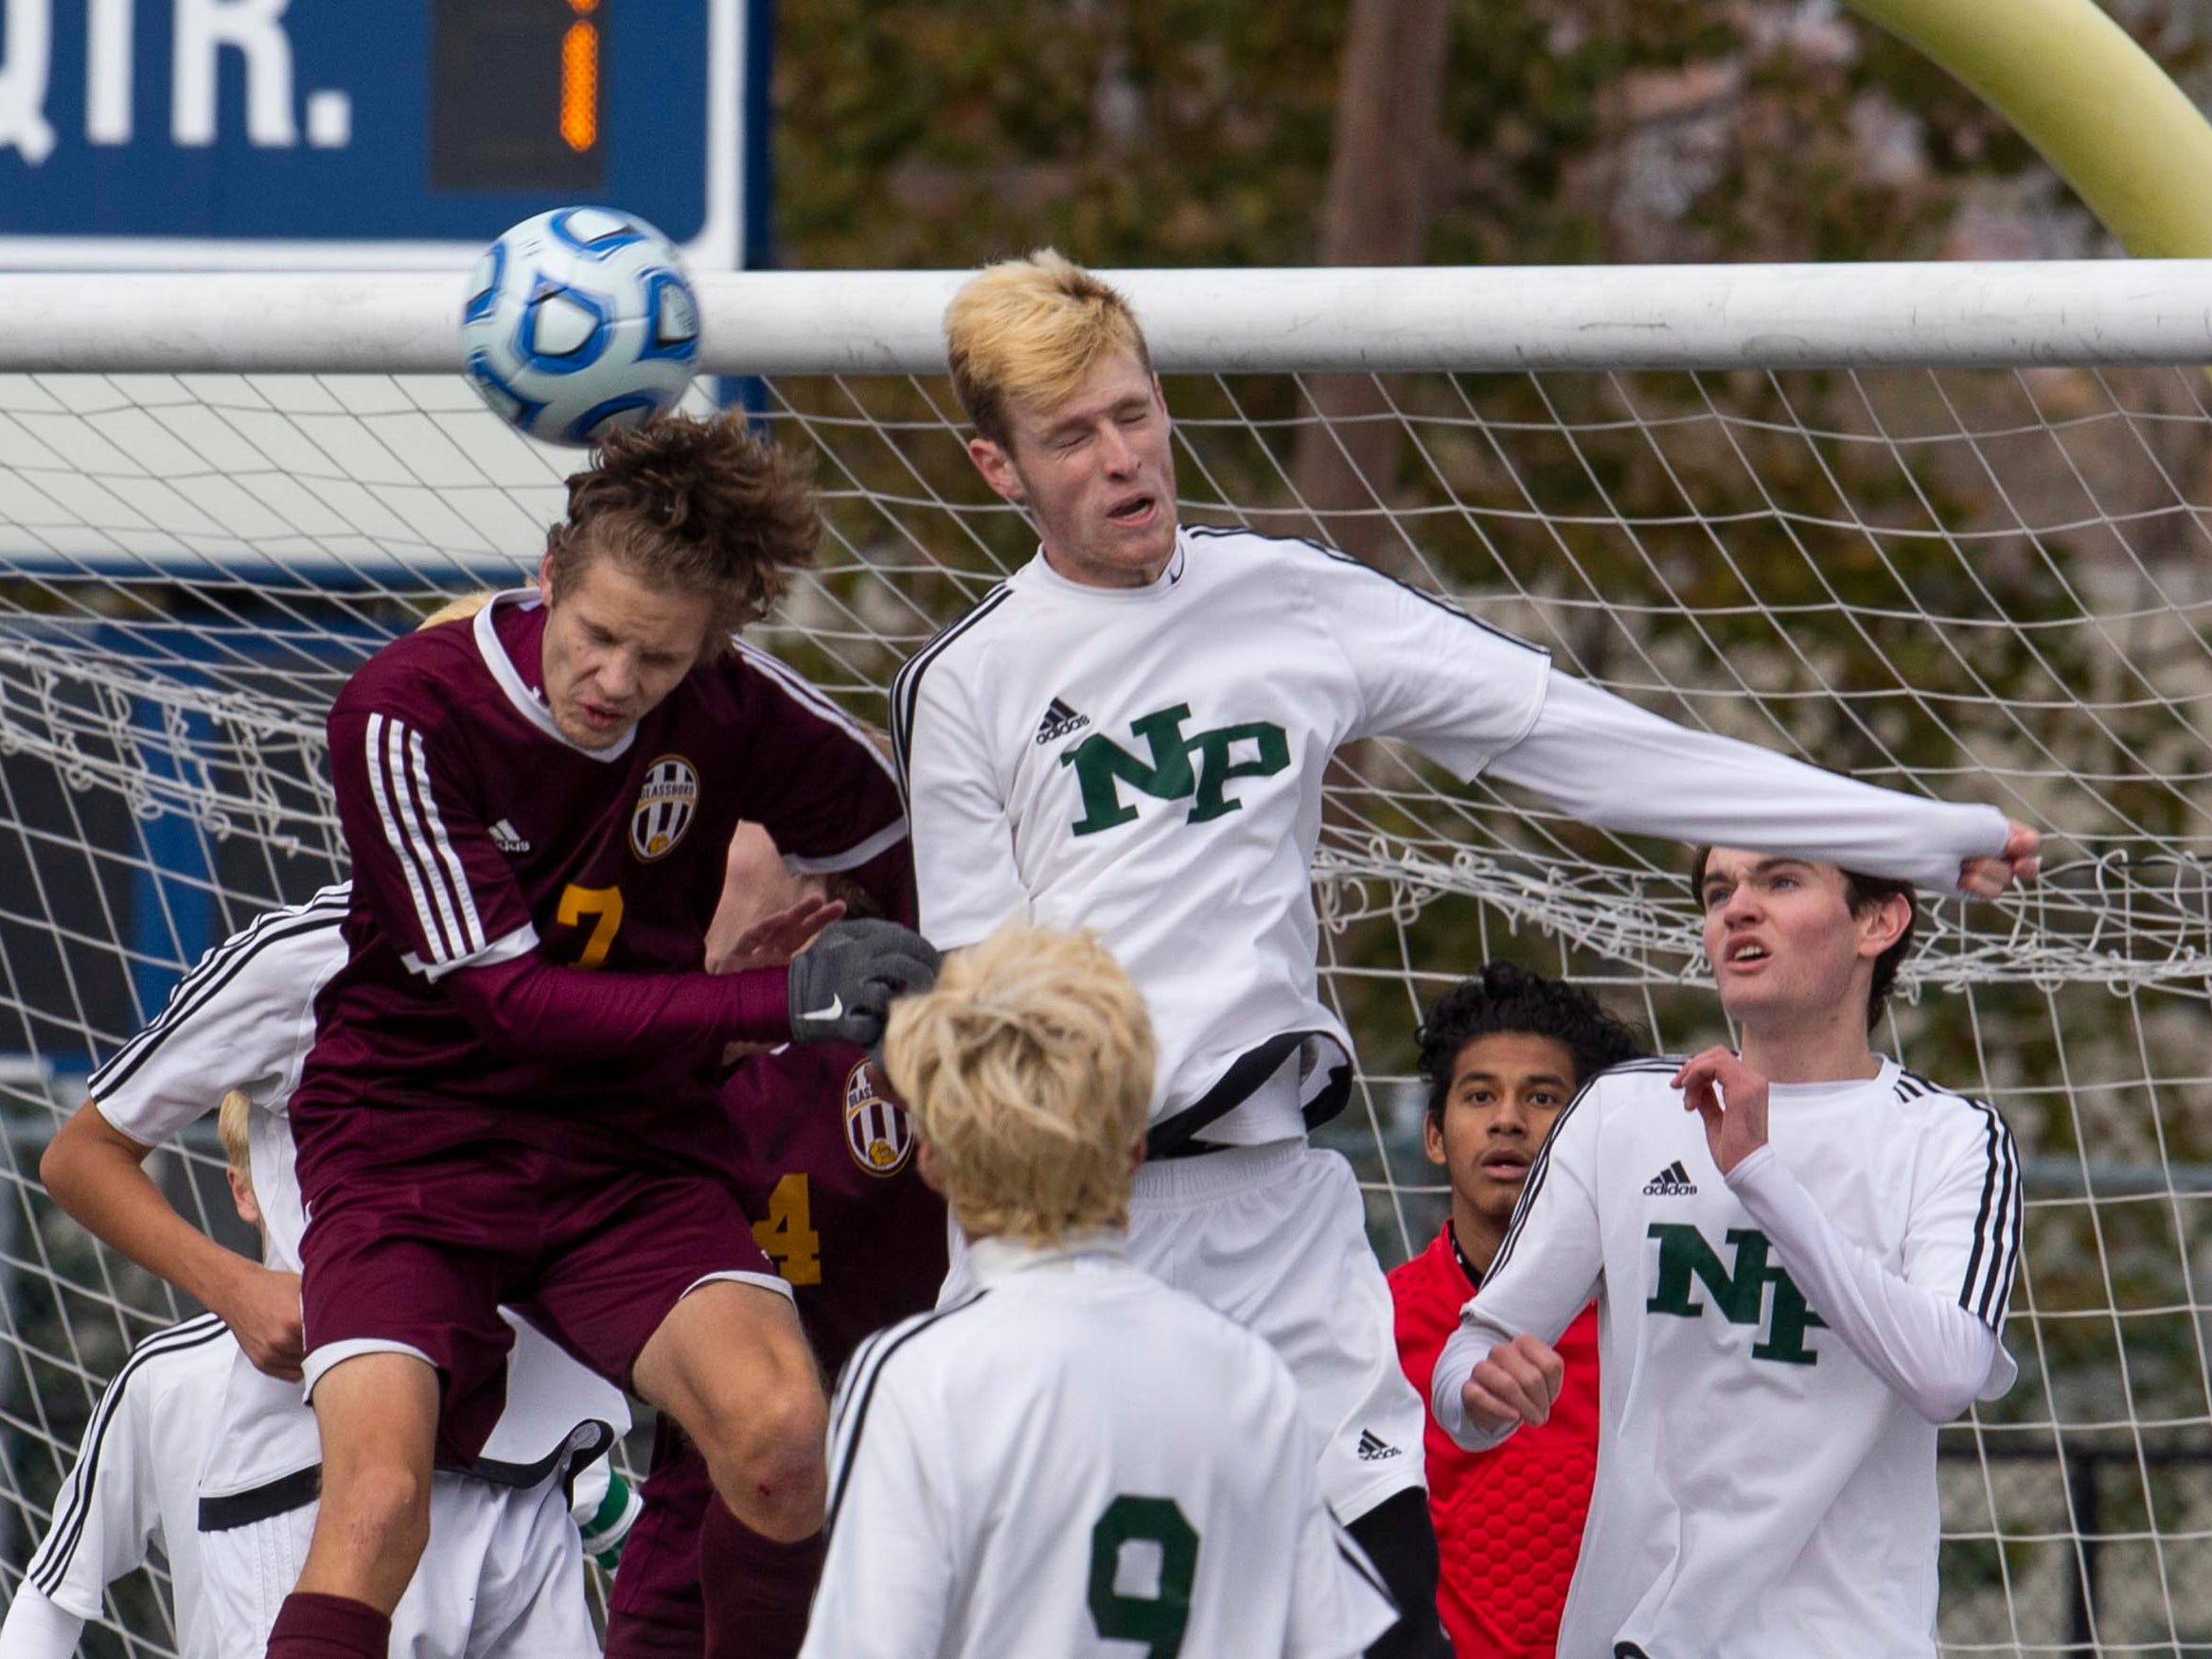 New Providence players protect their goal during regulation play. New Providence vs. Glassboro in Boys Group I Soccer in Union NJ.